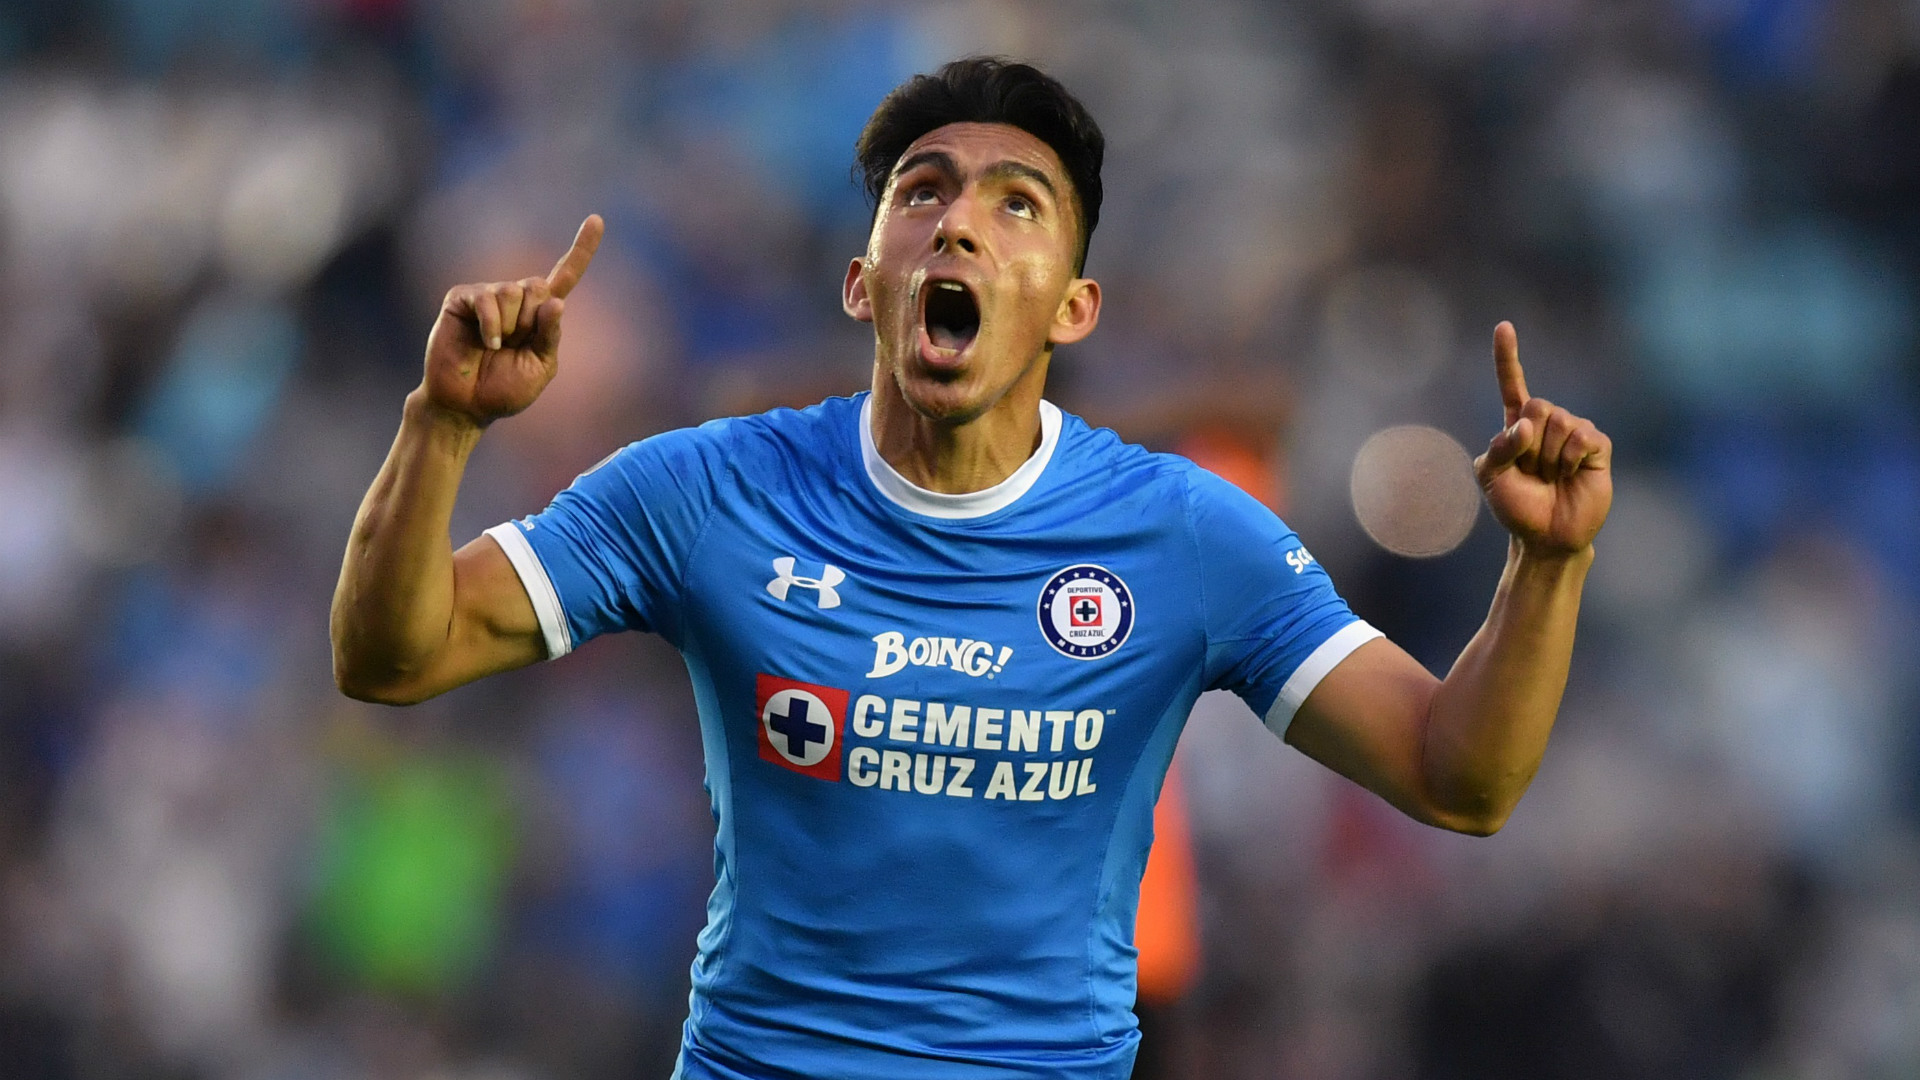 Angel Mena Cruz Azul